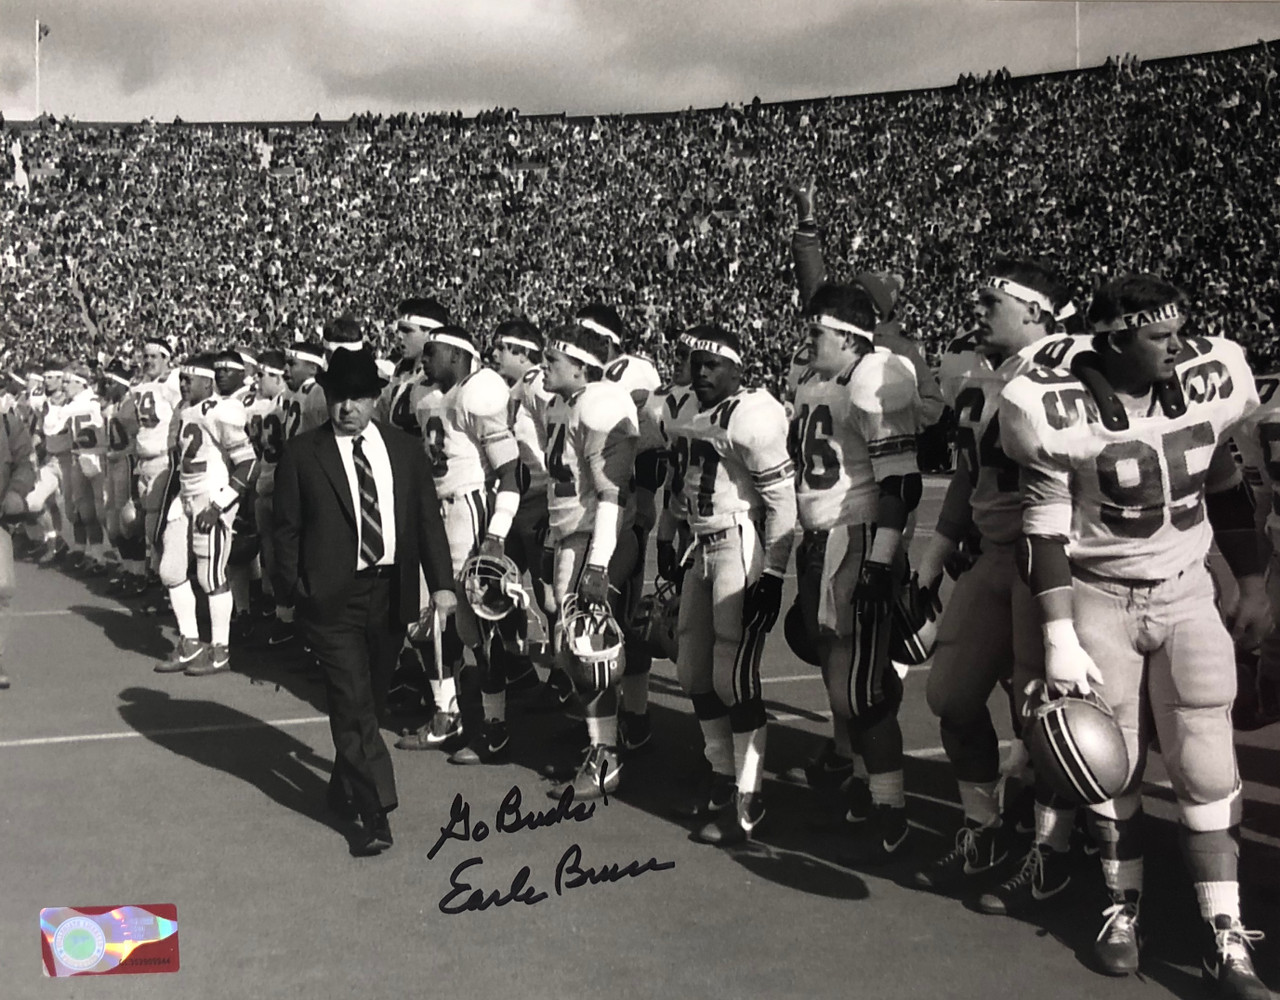 Earle Bruce OSU 11-2 11x14 Autographed Photo - Certified Authentic